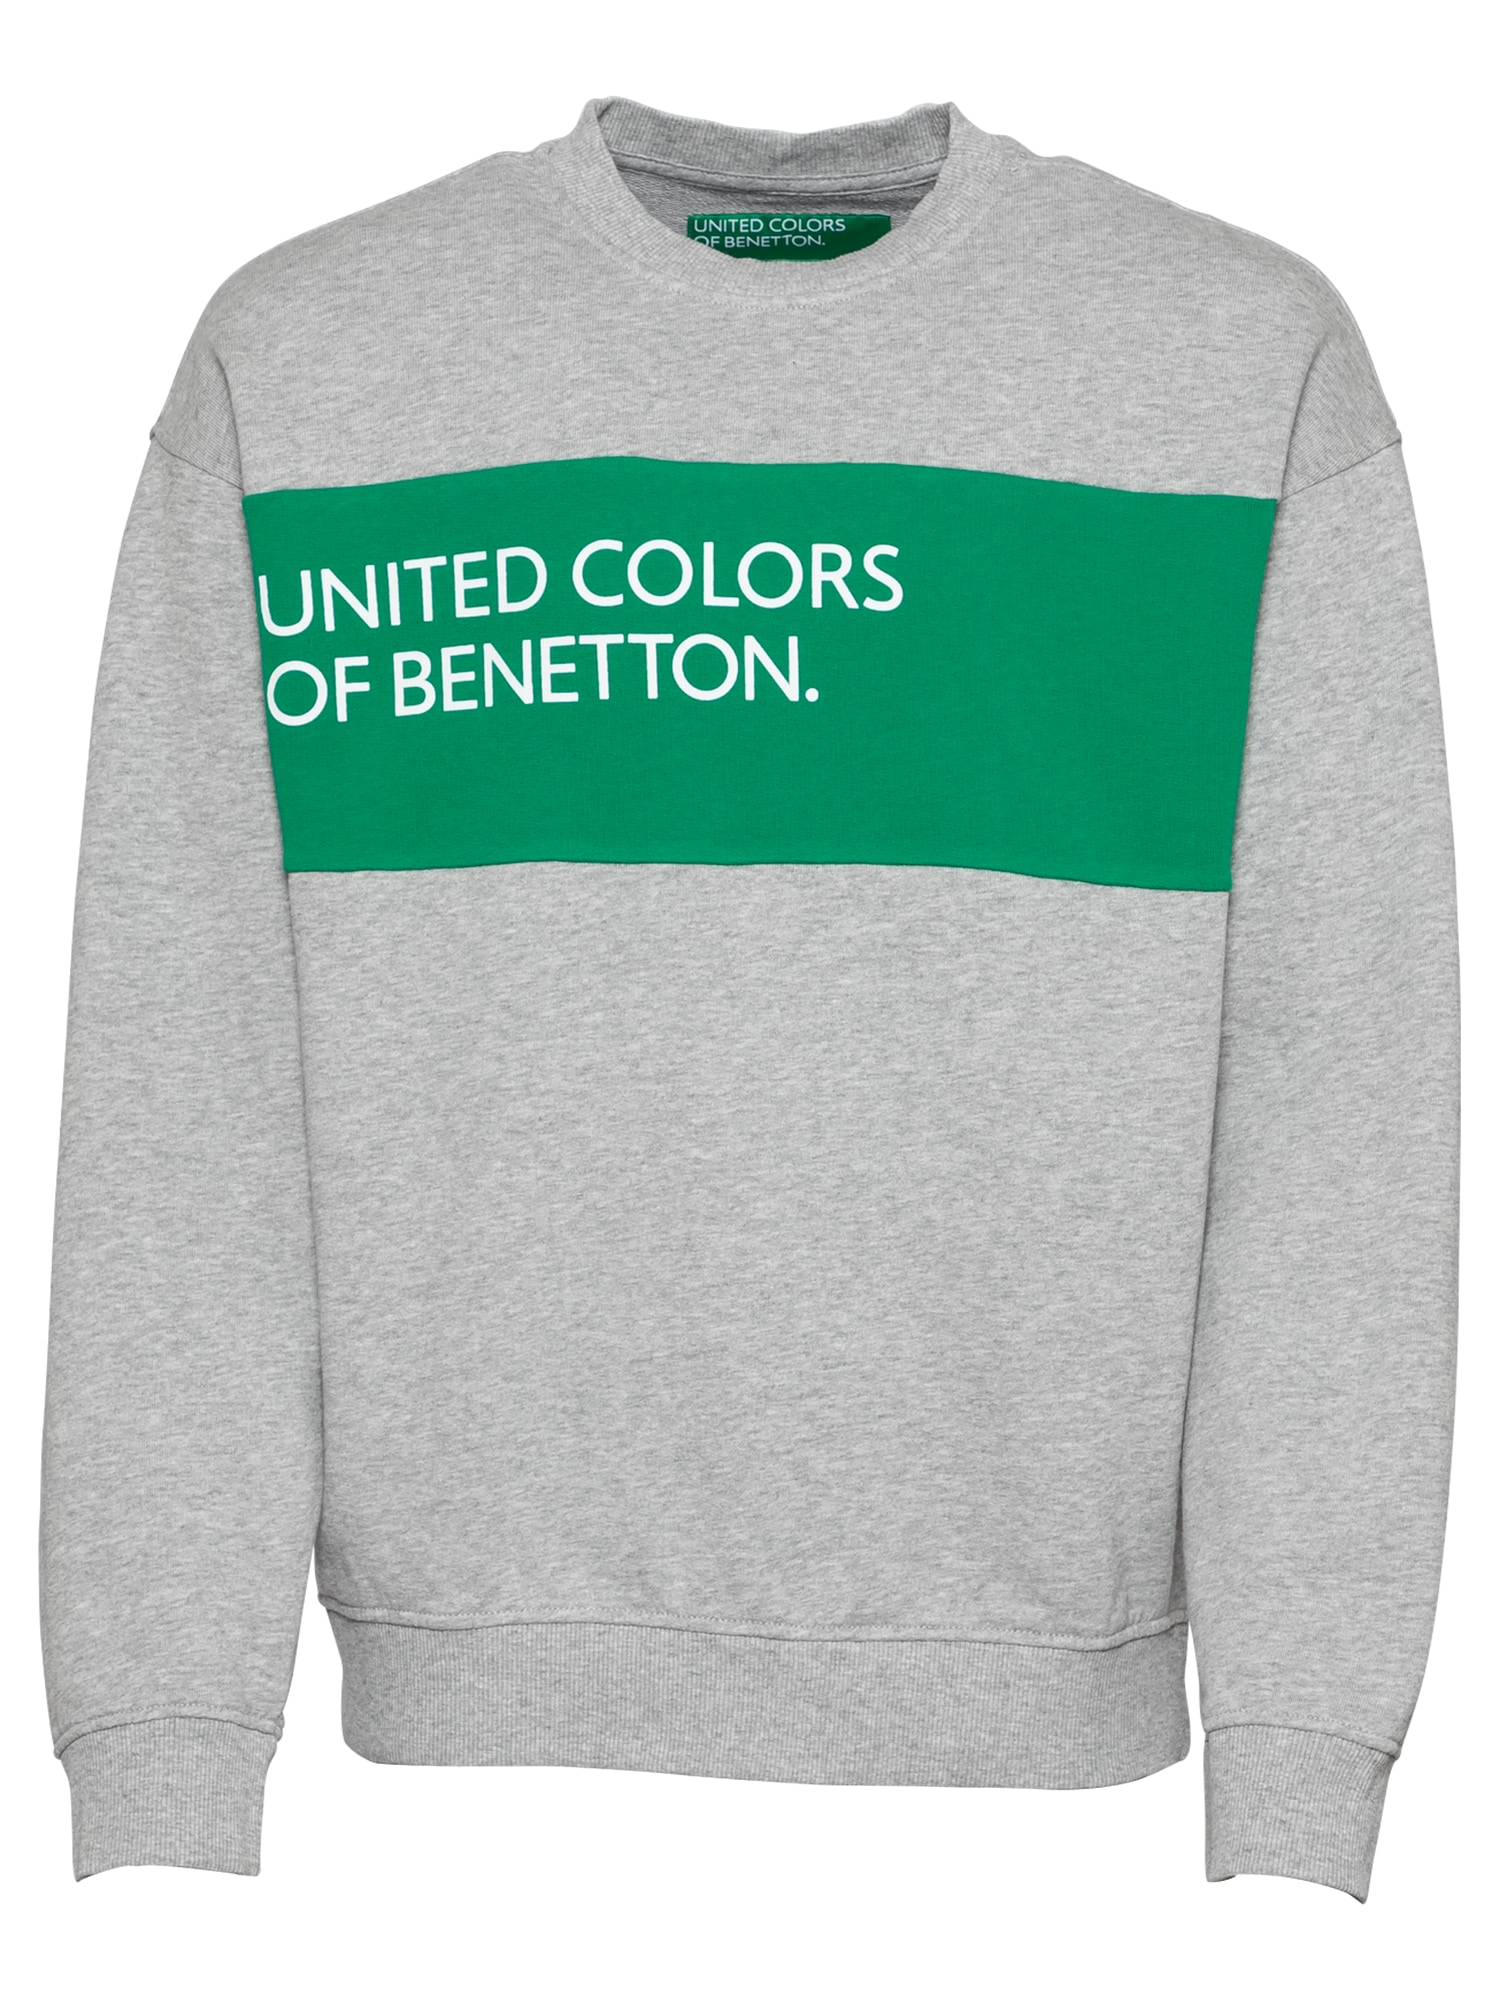 UNITED COLORS OF BENETTON Mikina šedá trávově zelená bílá United Colors of Benetton